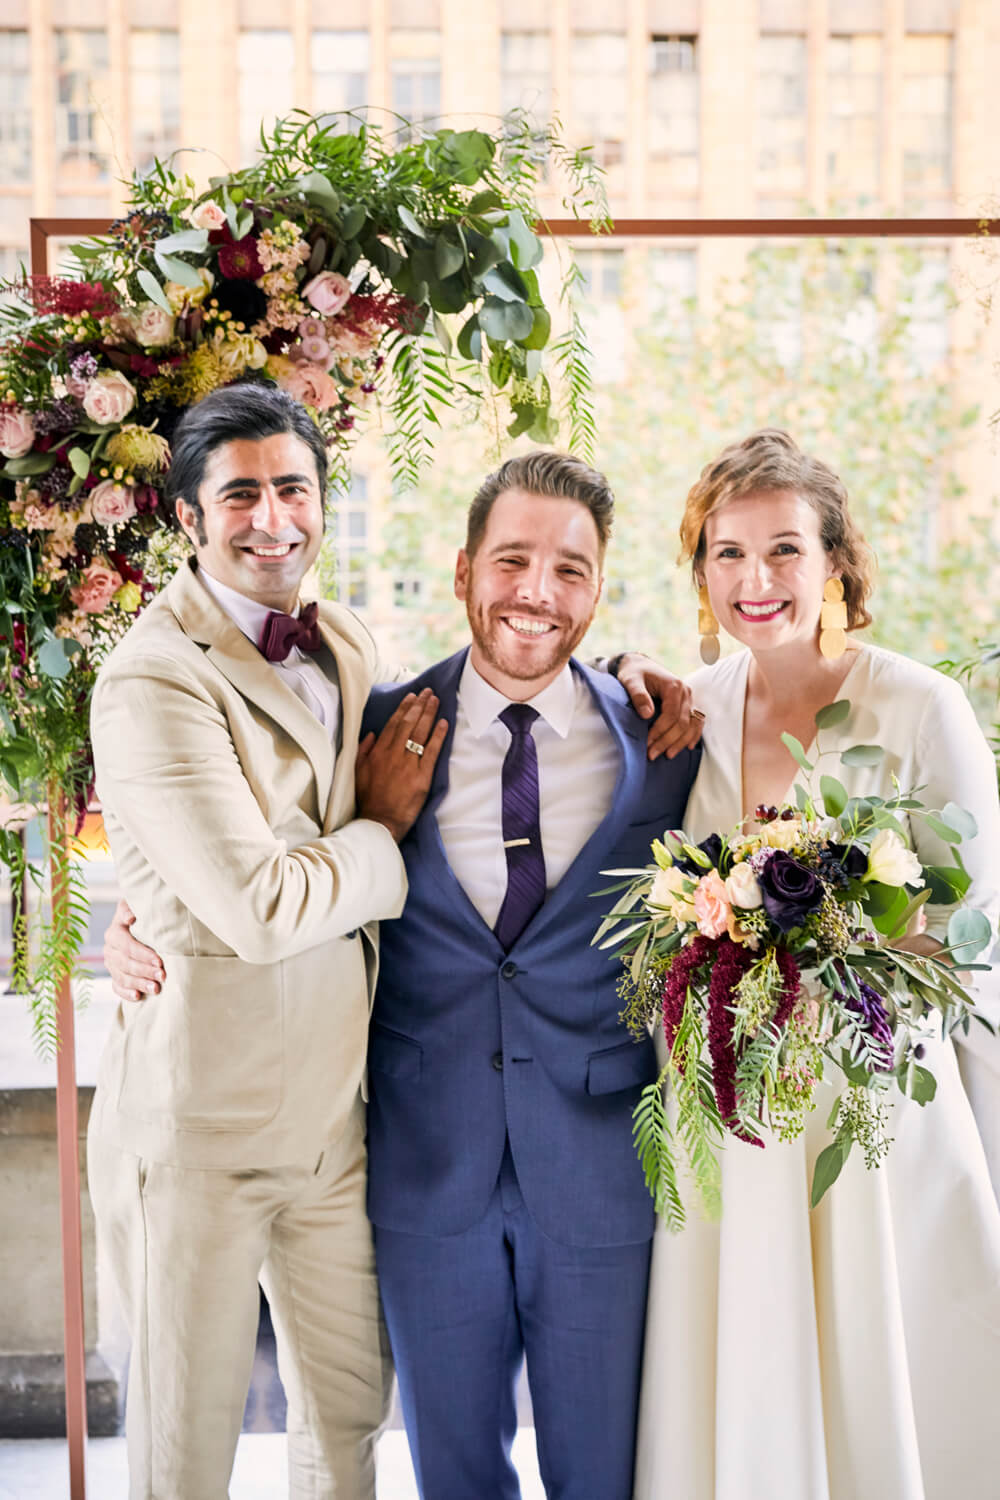 Fun Melbourne Town Hall Wedding - Flower Arch & Bouquet